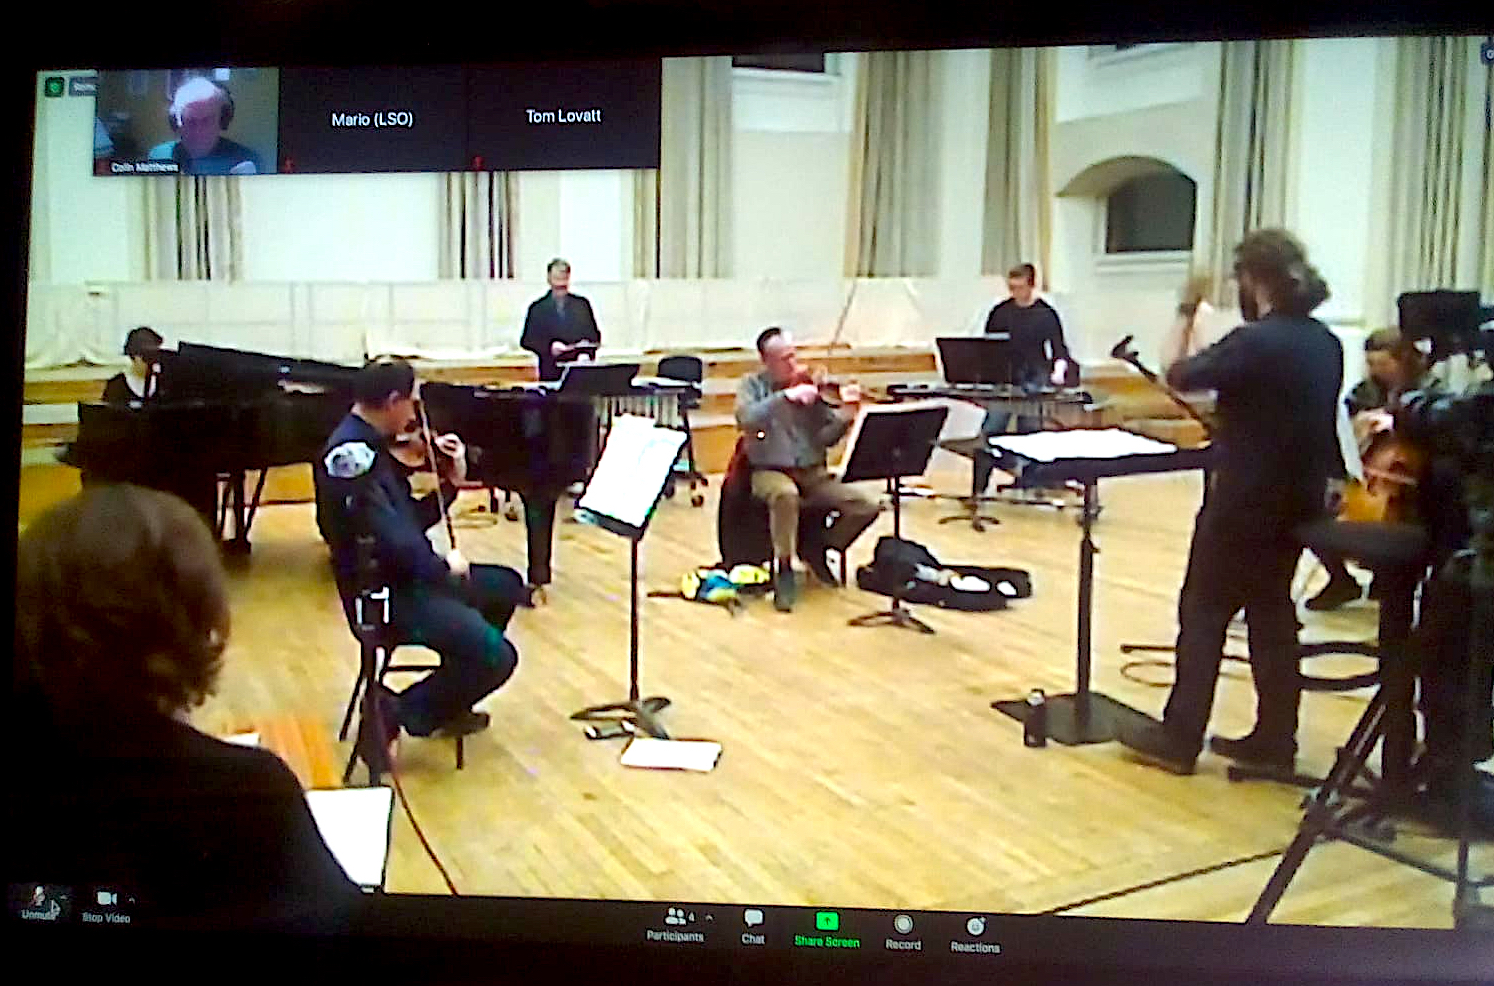 An ensemble of 6 (socially distanced) musicans plus conductor performing together; this is a screenshot on zoom and you can see Colin Matthews dialling in top left.